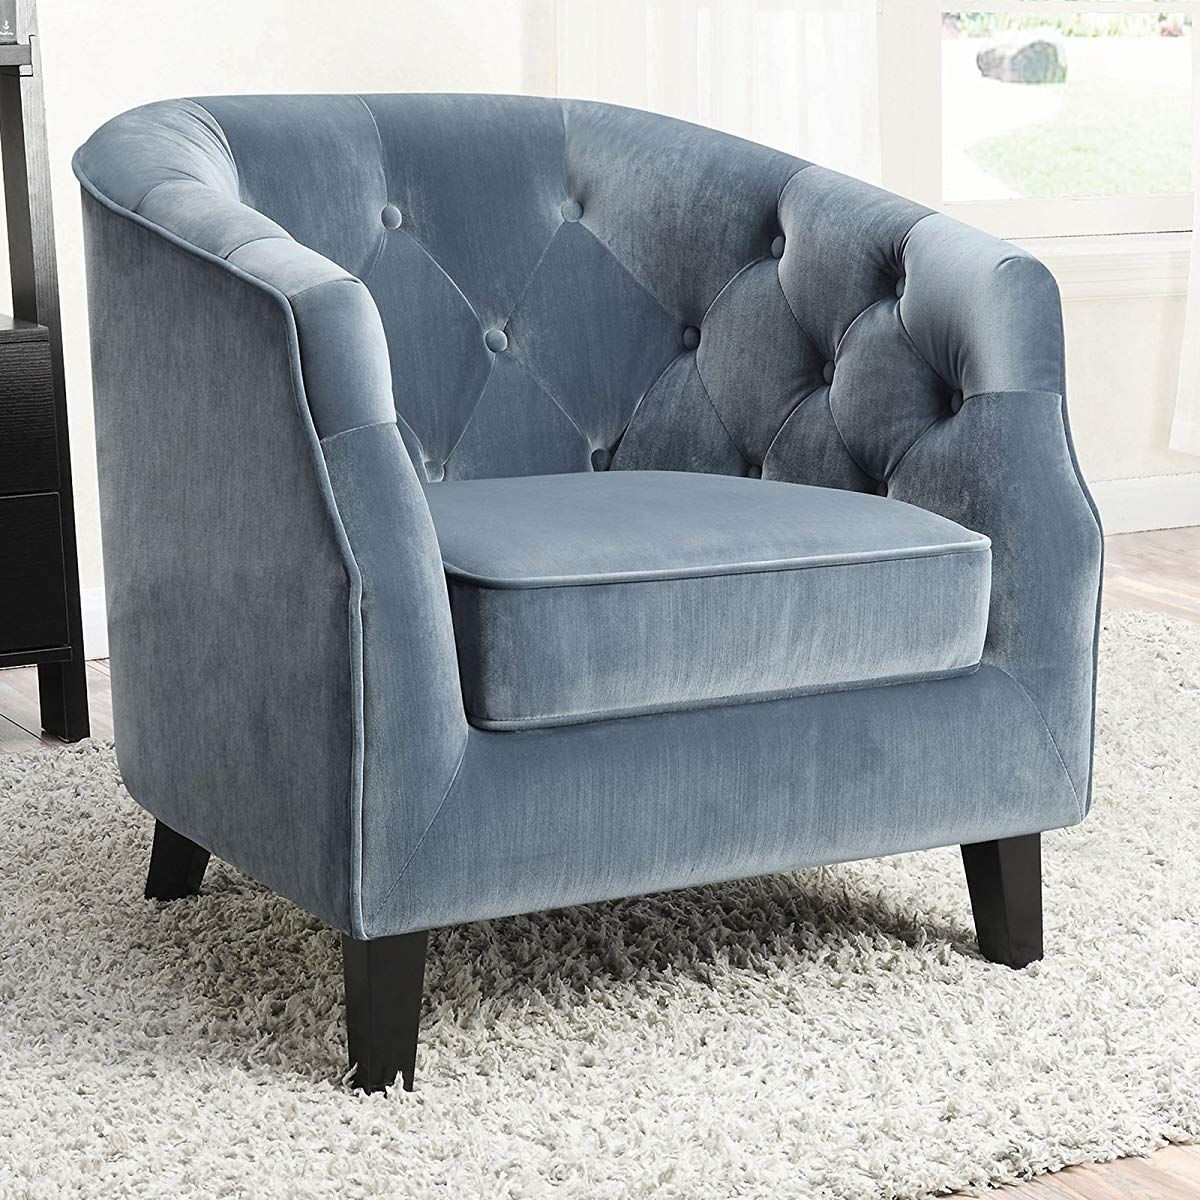 Velvet Upholstered Tufted Accent Chair Blue Accent Chair